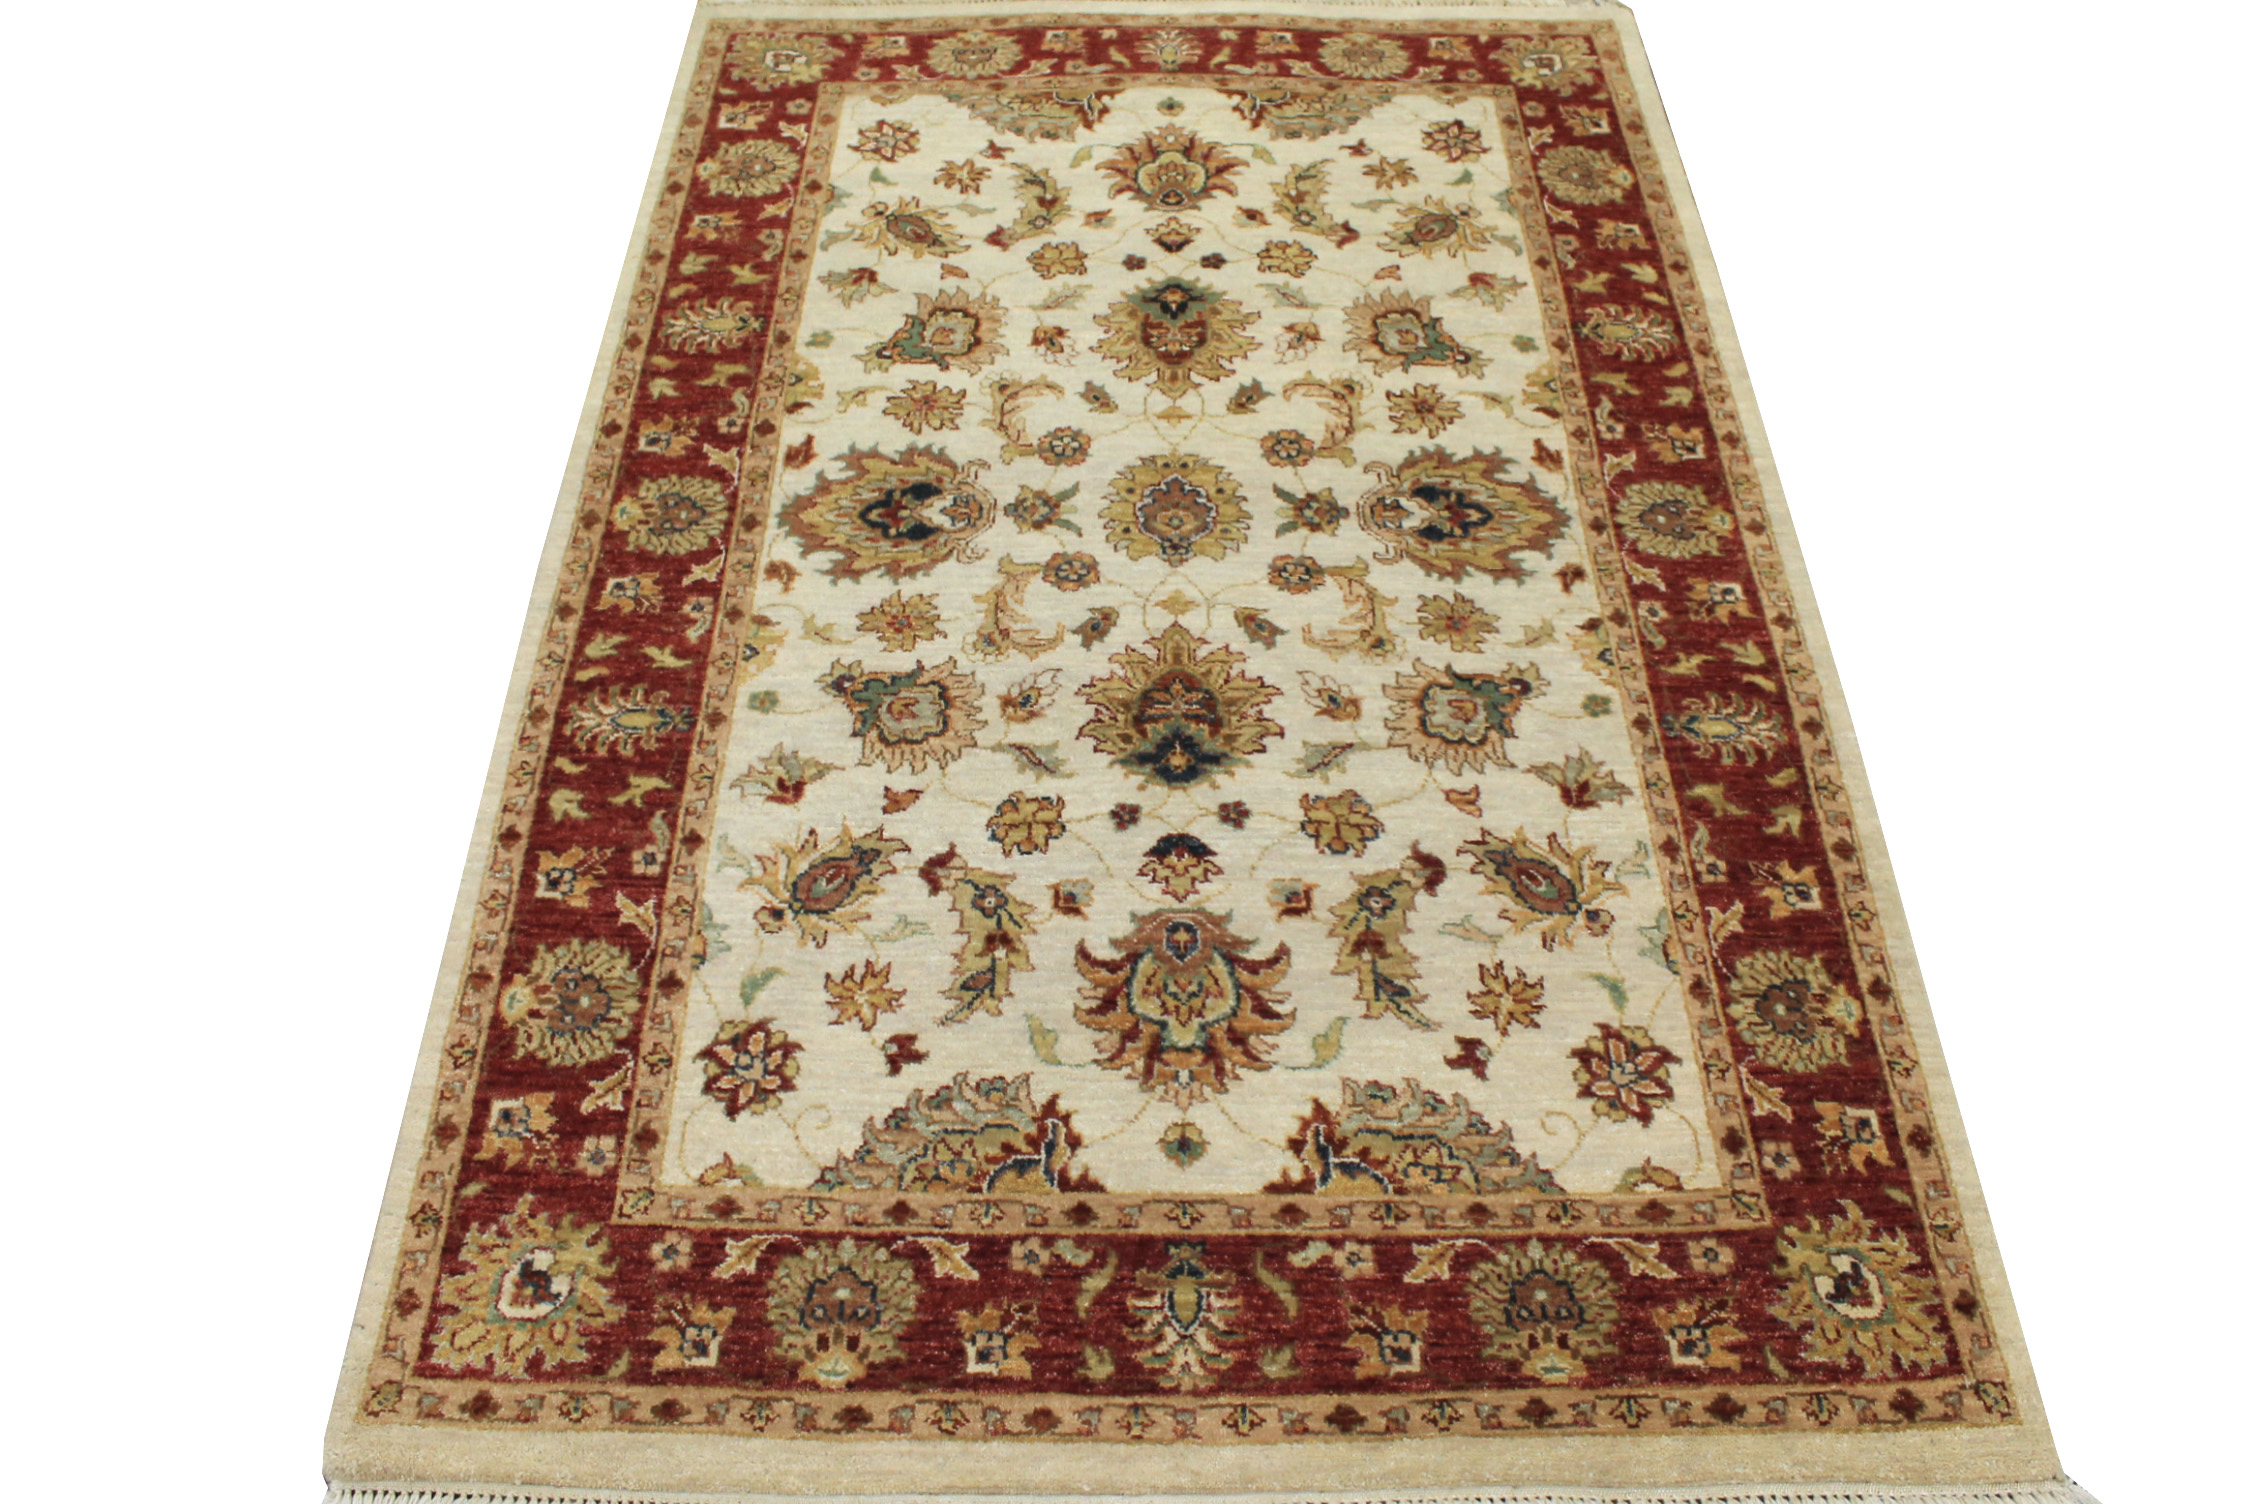 4x6 Traditional Hand Knotted Wool Area Rug - MR17119